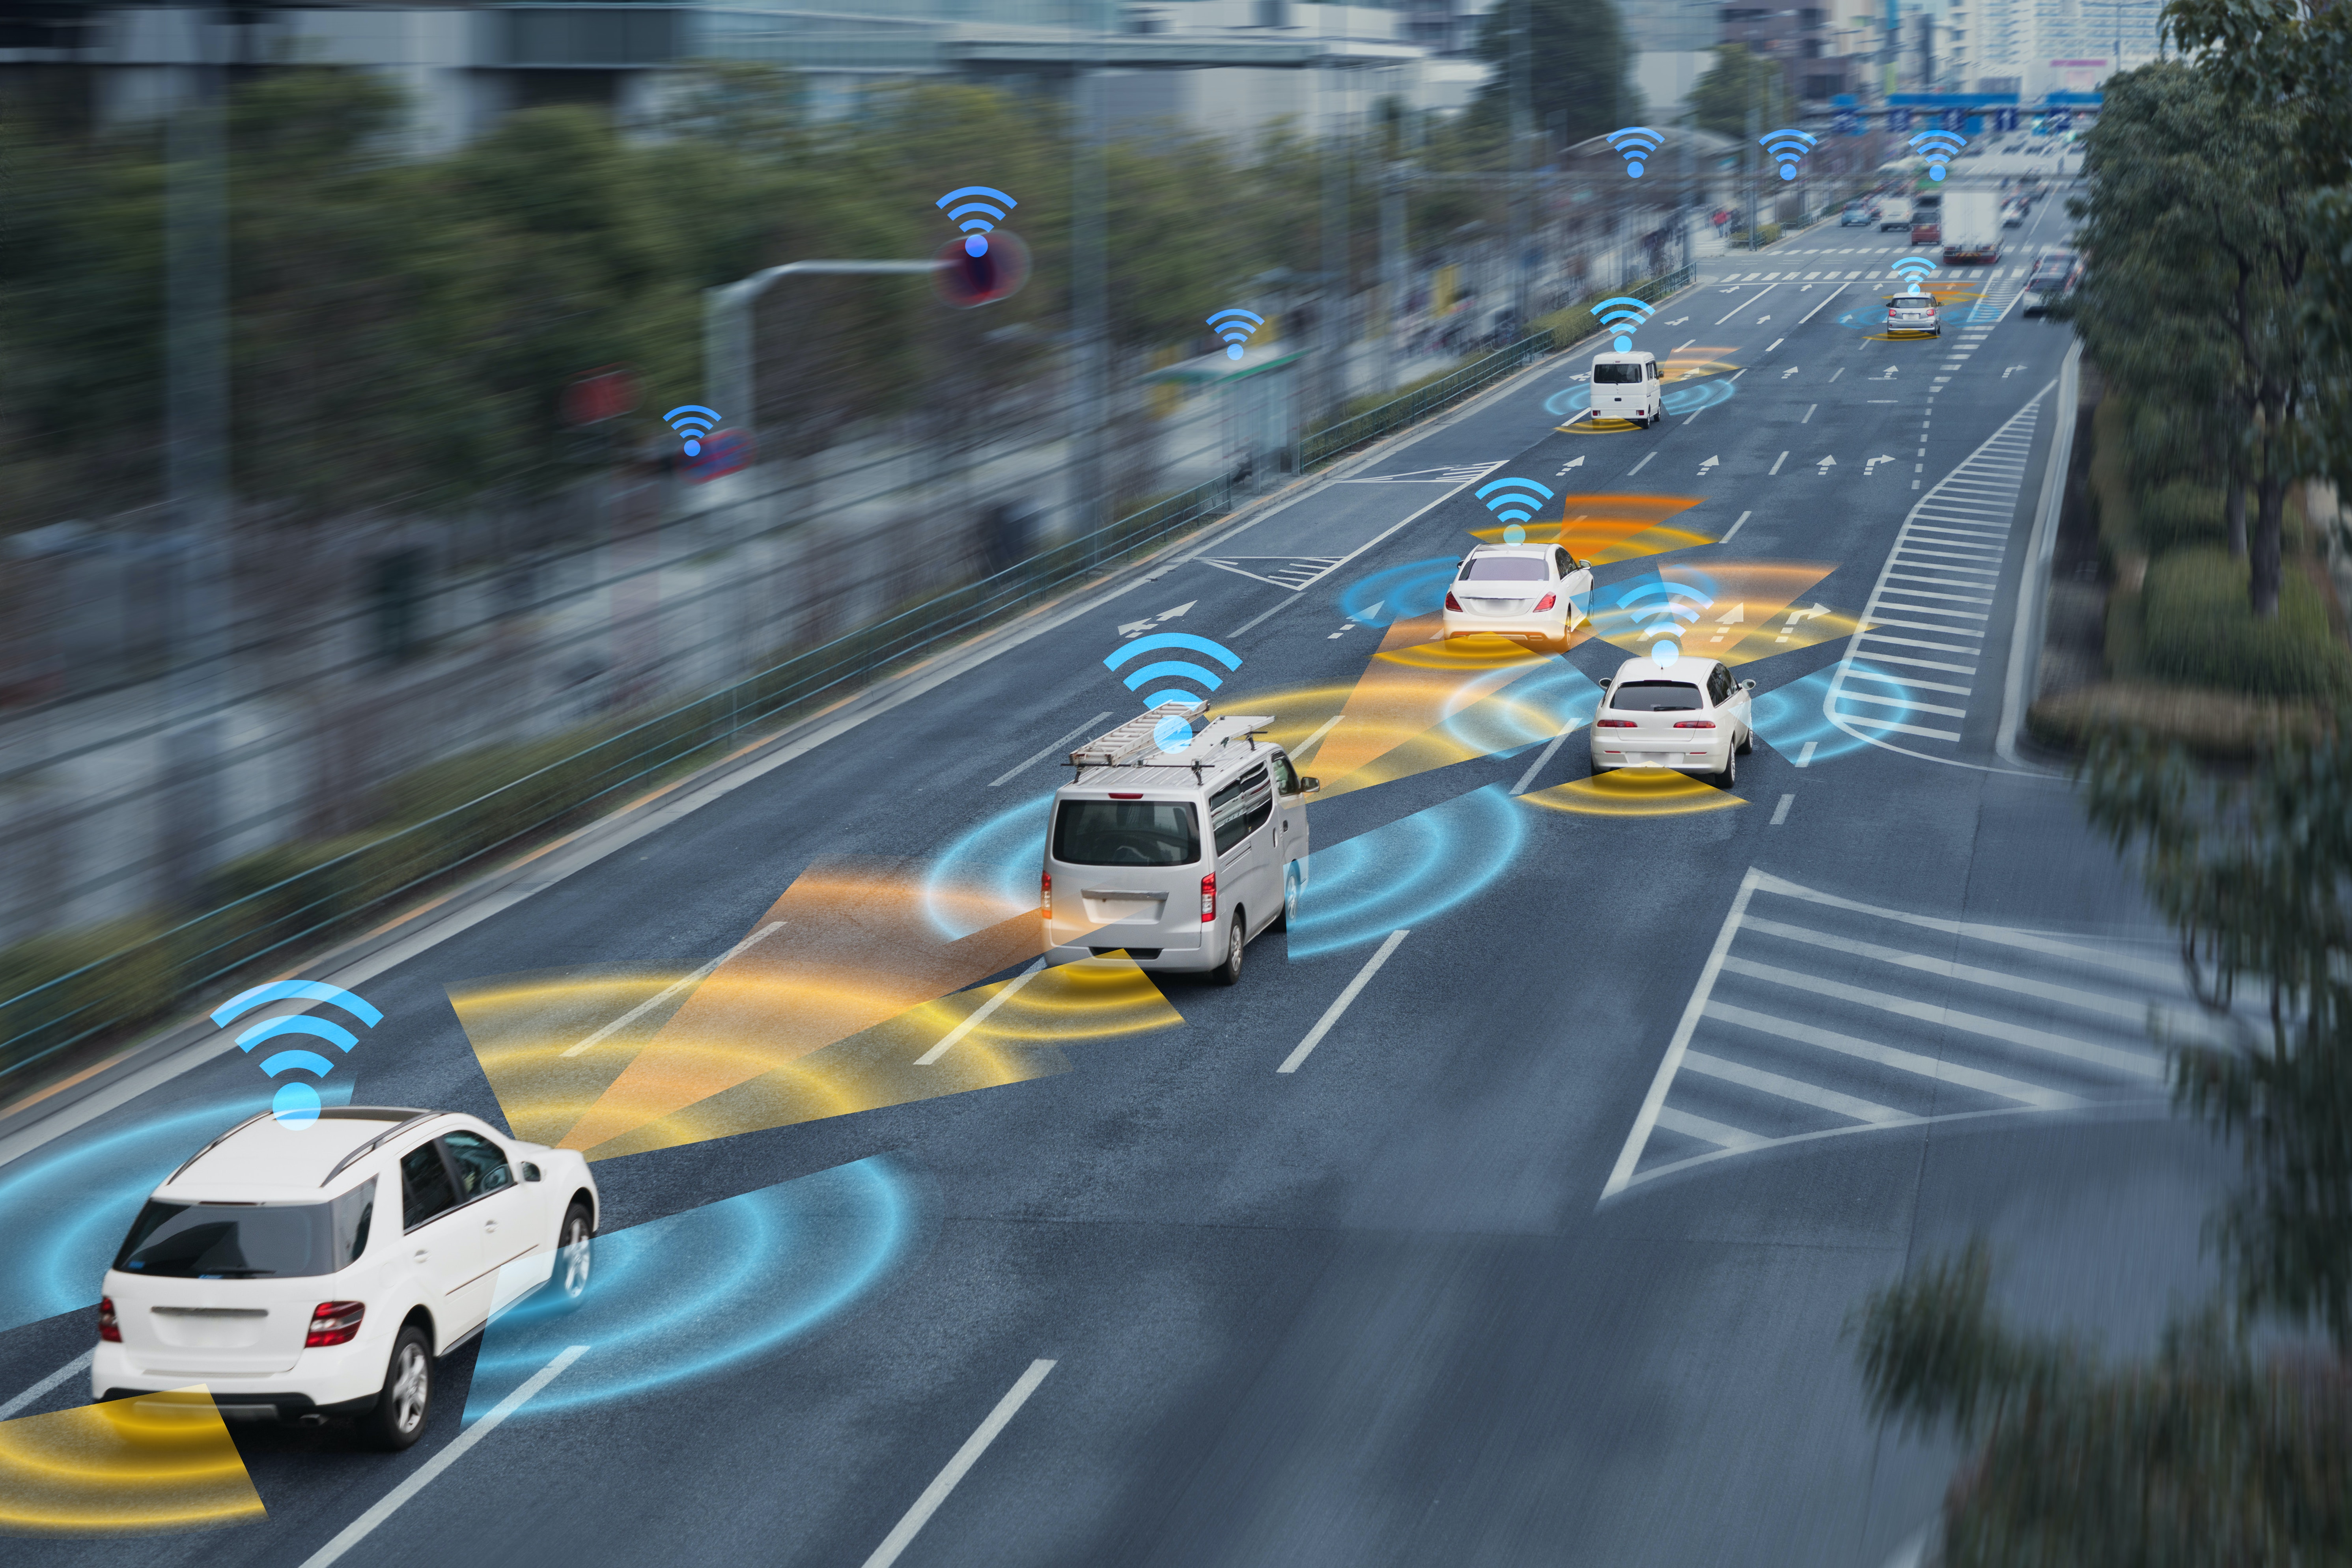 driverless cars offer new forms of control – no wonder governments